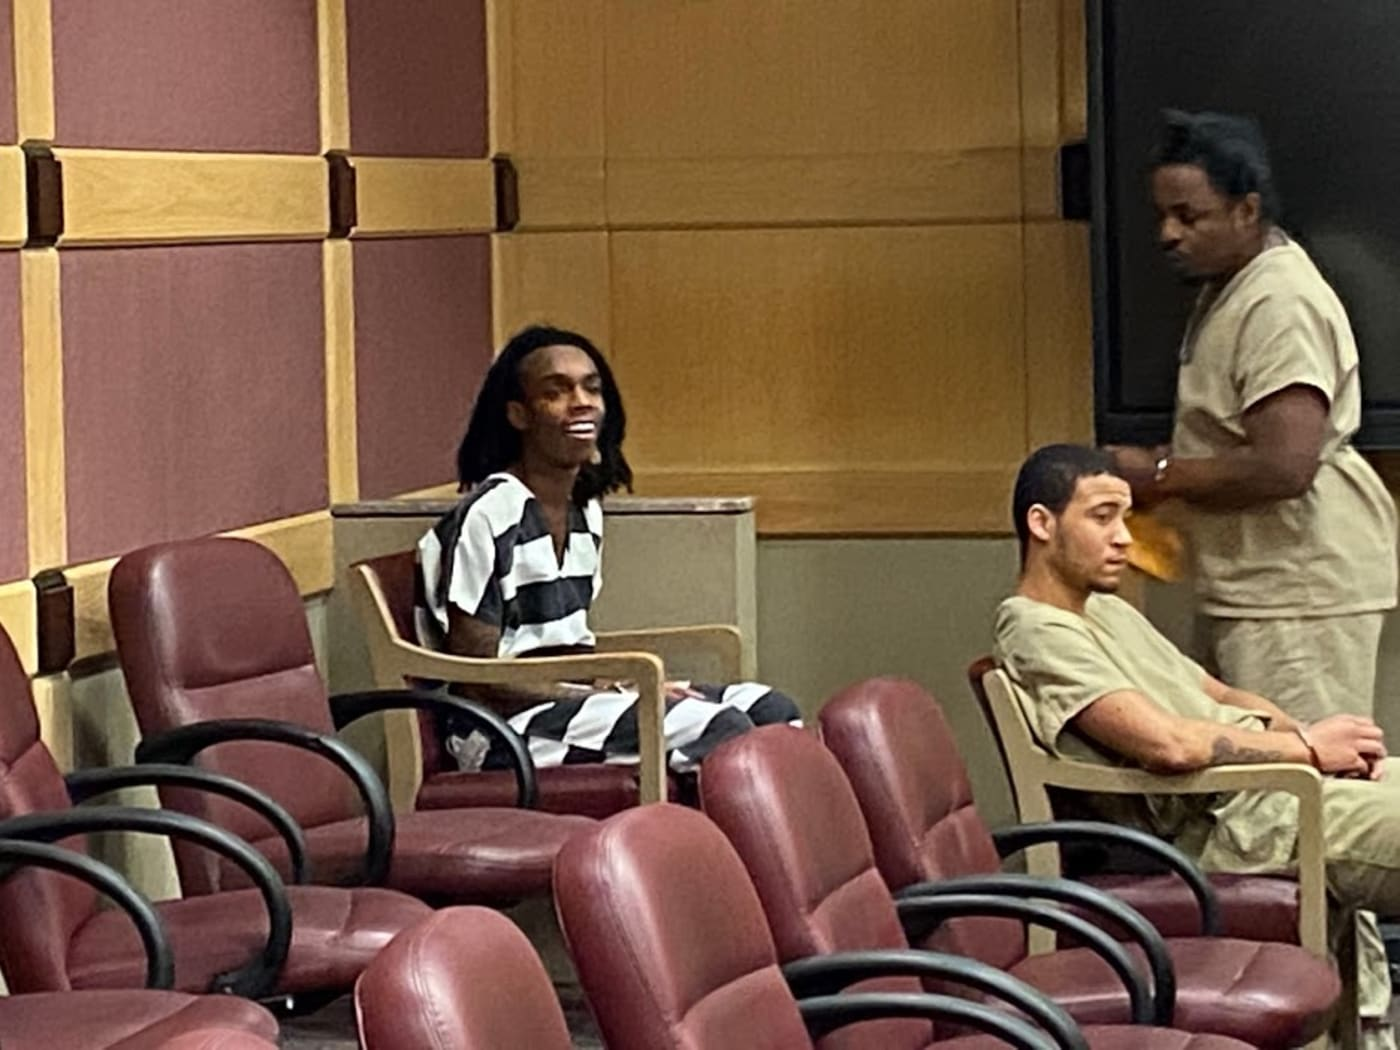 YNW Melly courtroom